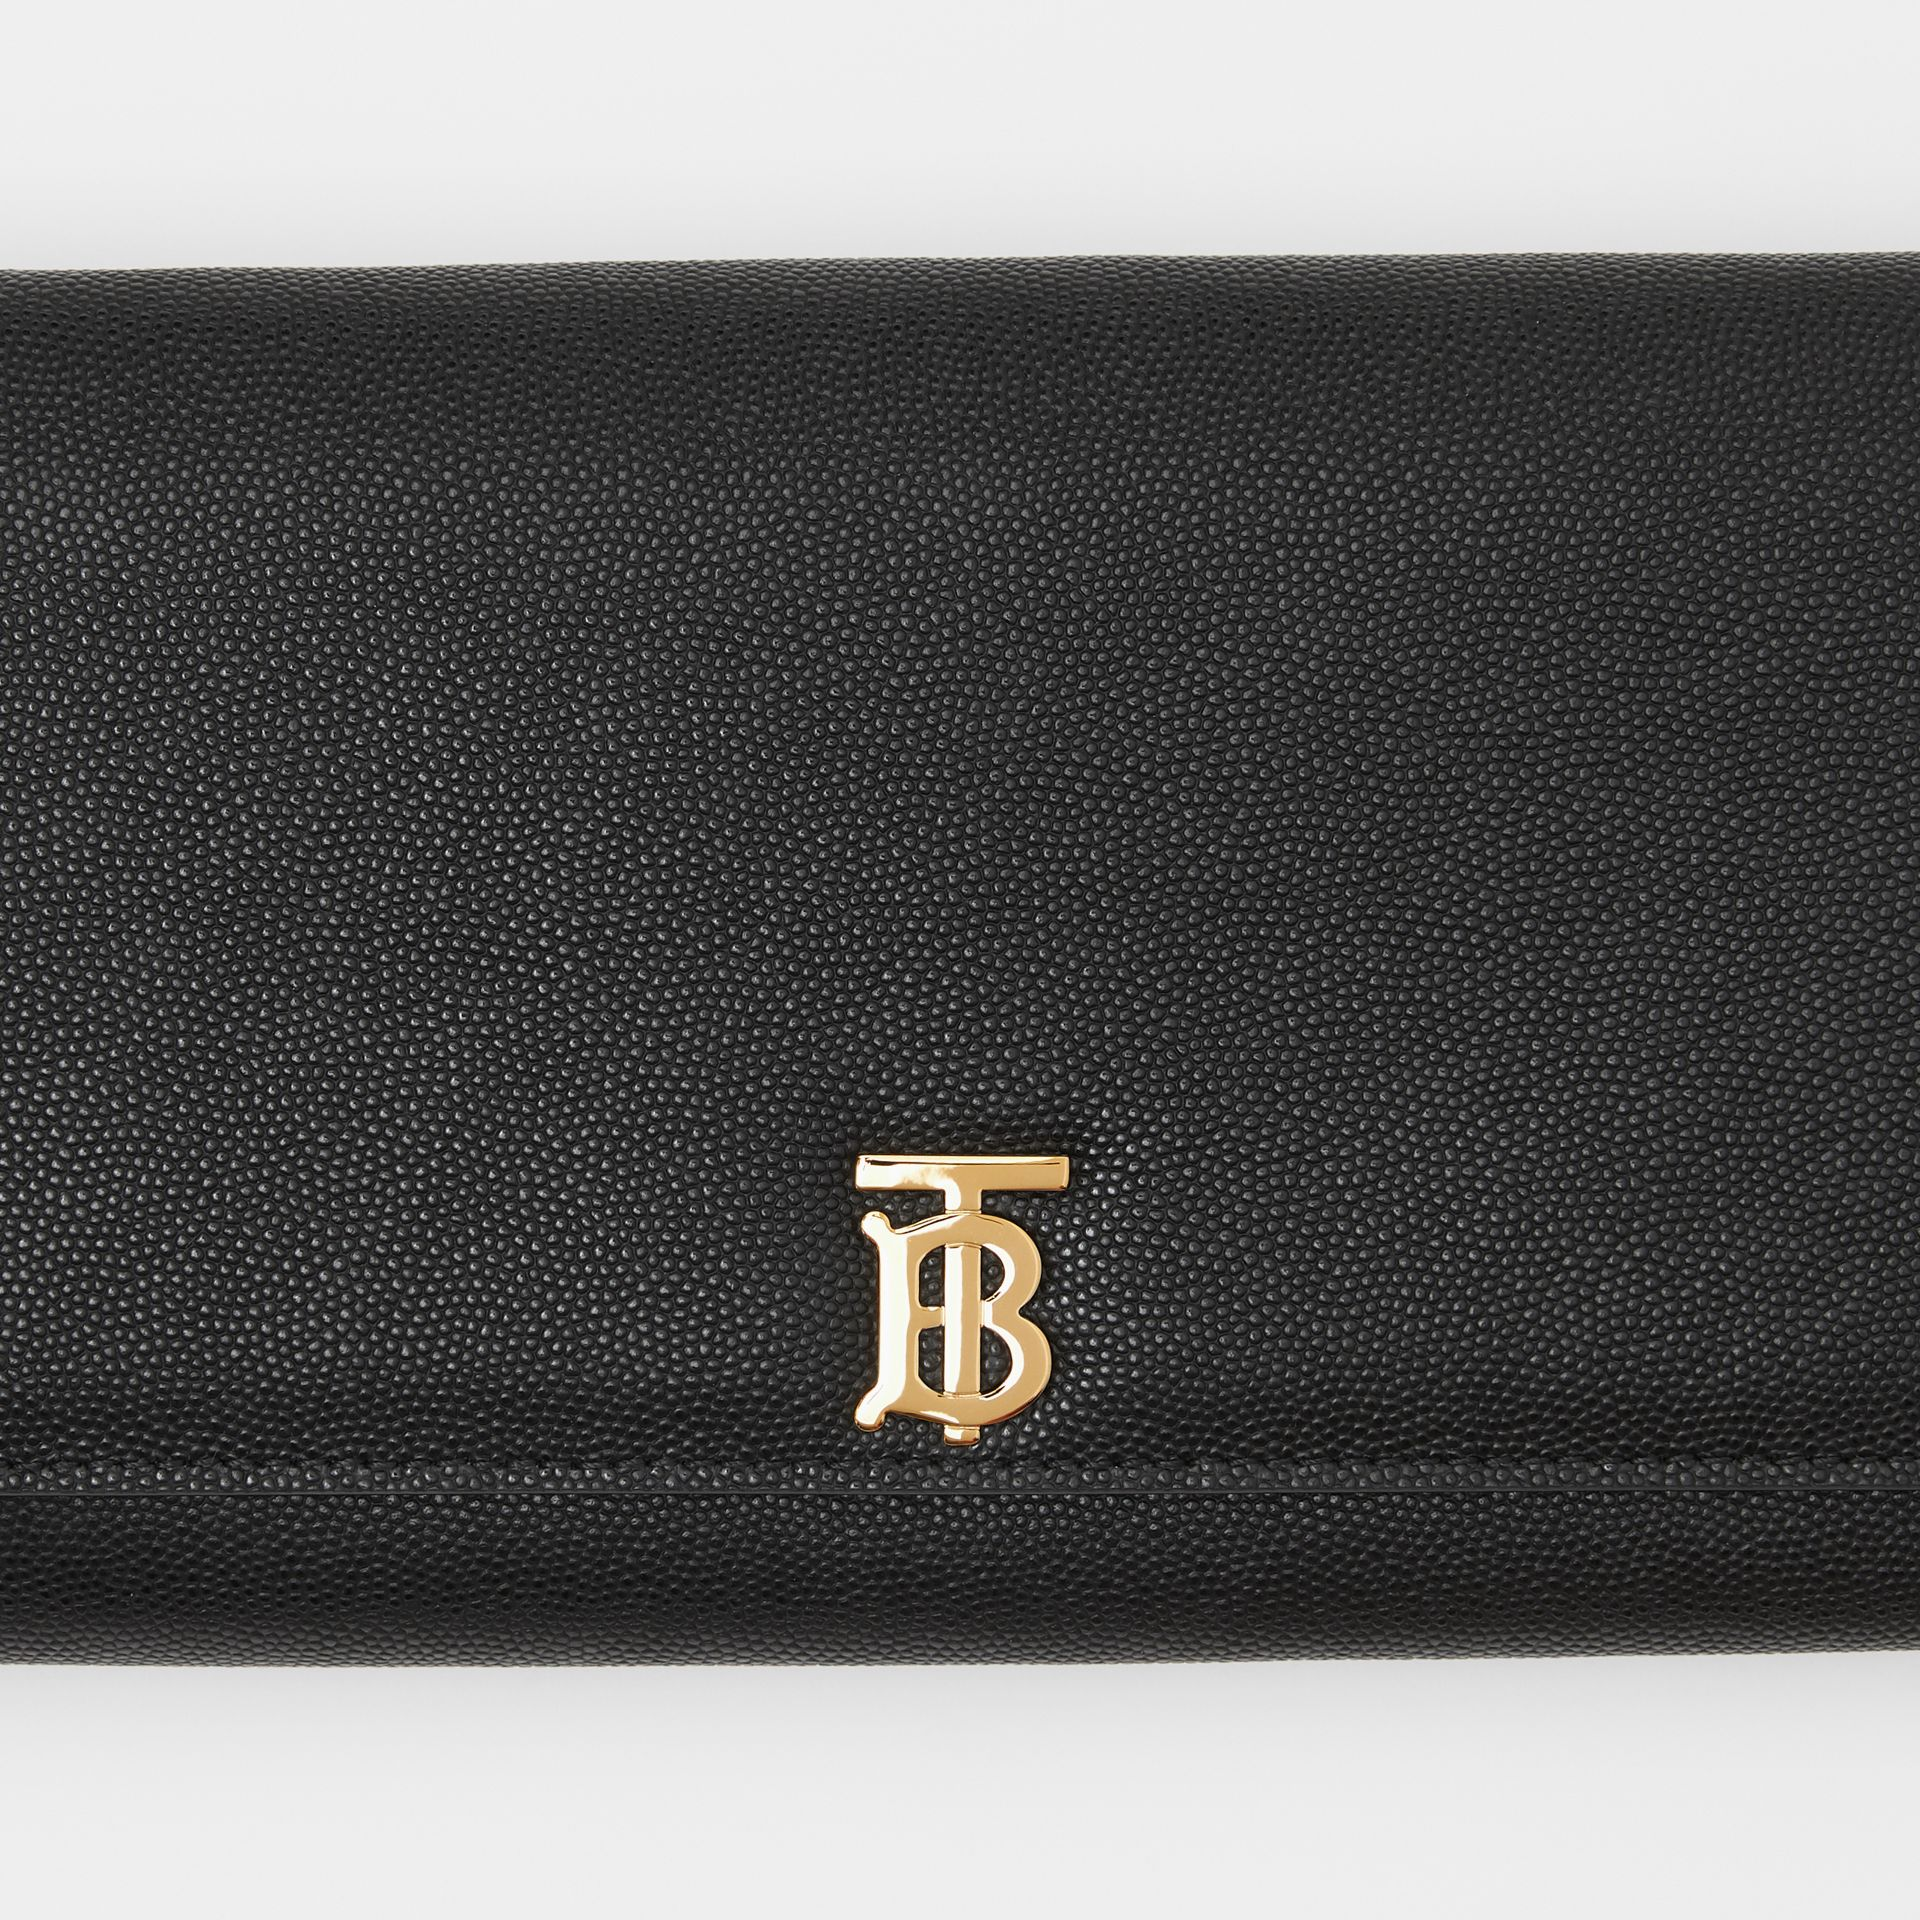 Monogram Motif Leather Wallet with Detachable Strap in Black - Women | Burberry Hong Kong S.A.R - gallery image 1